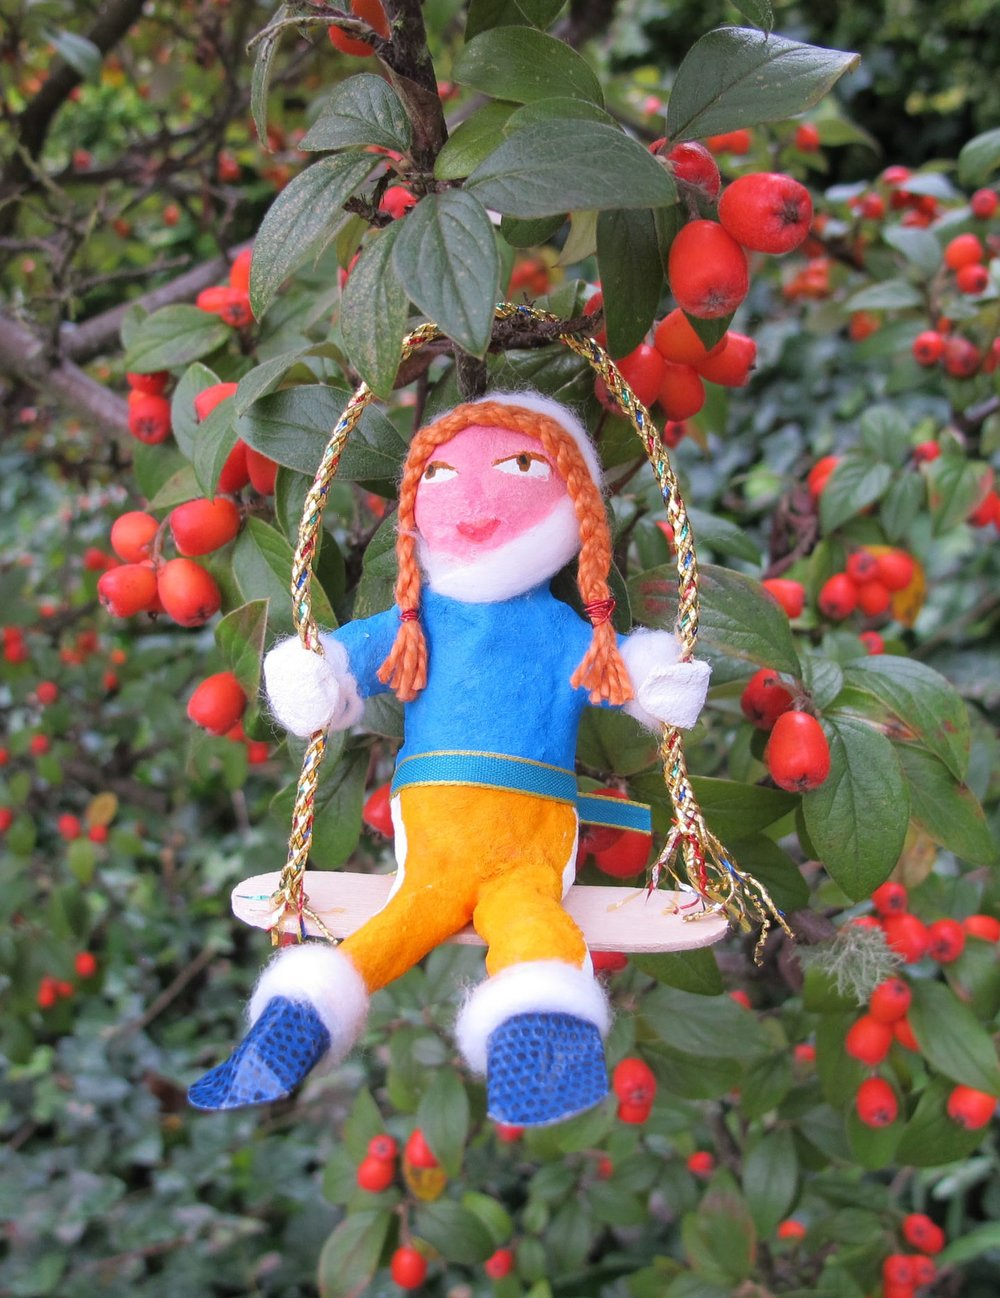 SAM helga on a swing.jpg